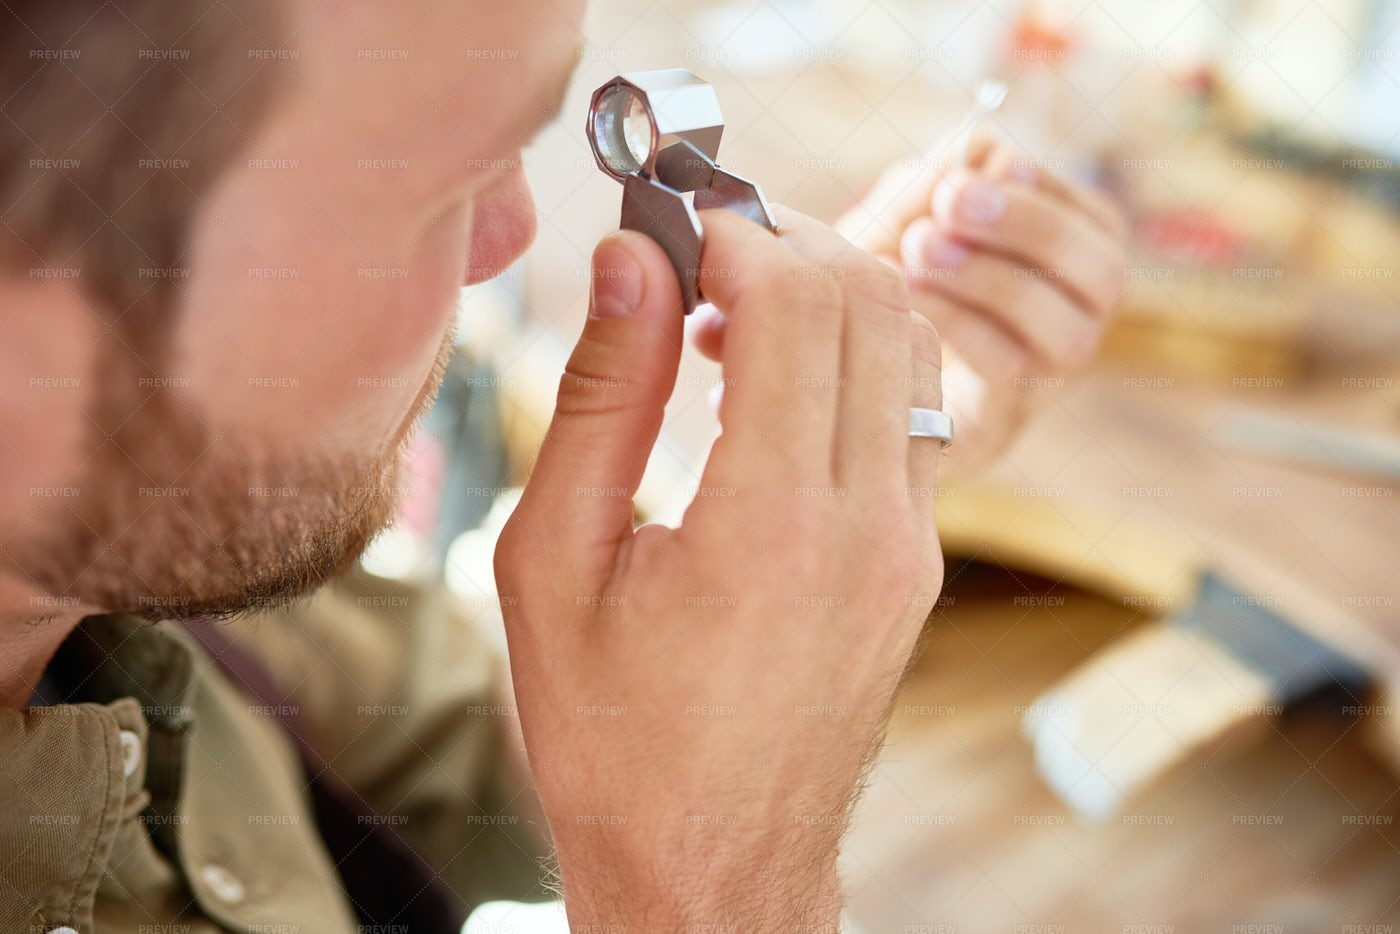 Ring Appraisal In Jewelry Shop: Stock Photos